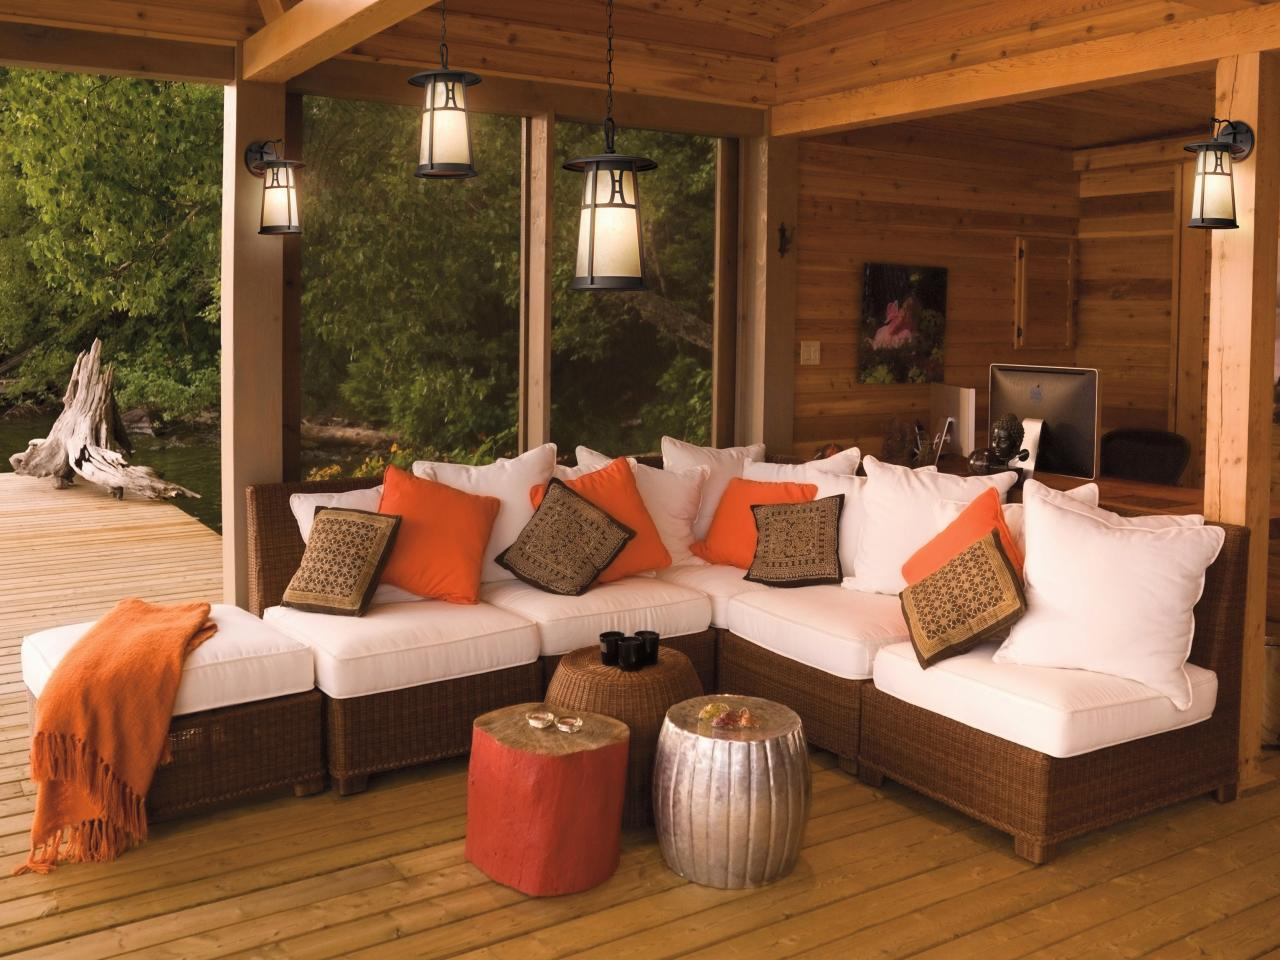 Outdoor Rooms Add Livable Space | HGTV on Garden Living Space id=76057